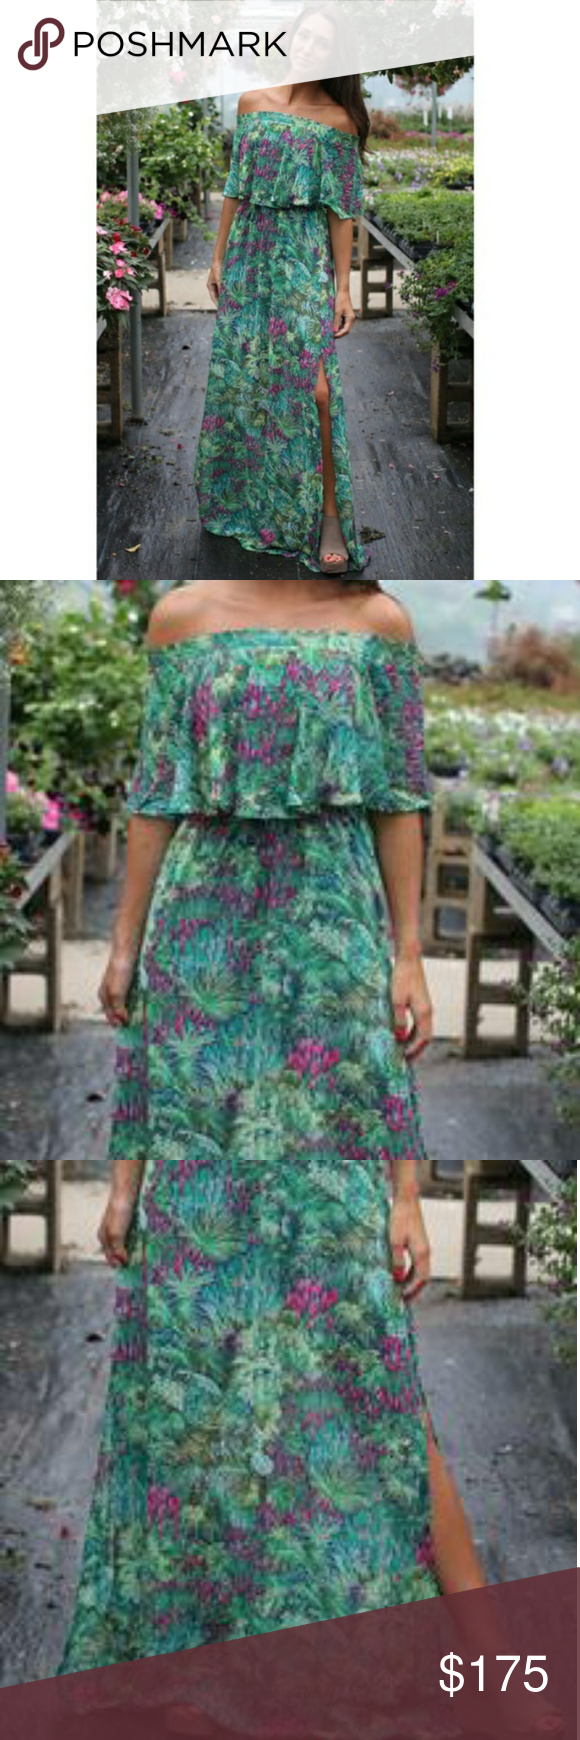 abe441abb8 Show Me Your Mumu Rainforest Cafe Hacienda Maxi Grab the girls and head to  brunch in this Hacienda Maxi Dress. Maxi silhouette. Floral print  throughout.